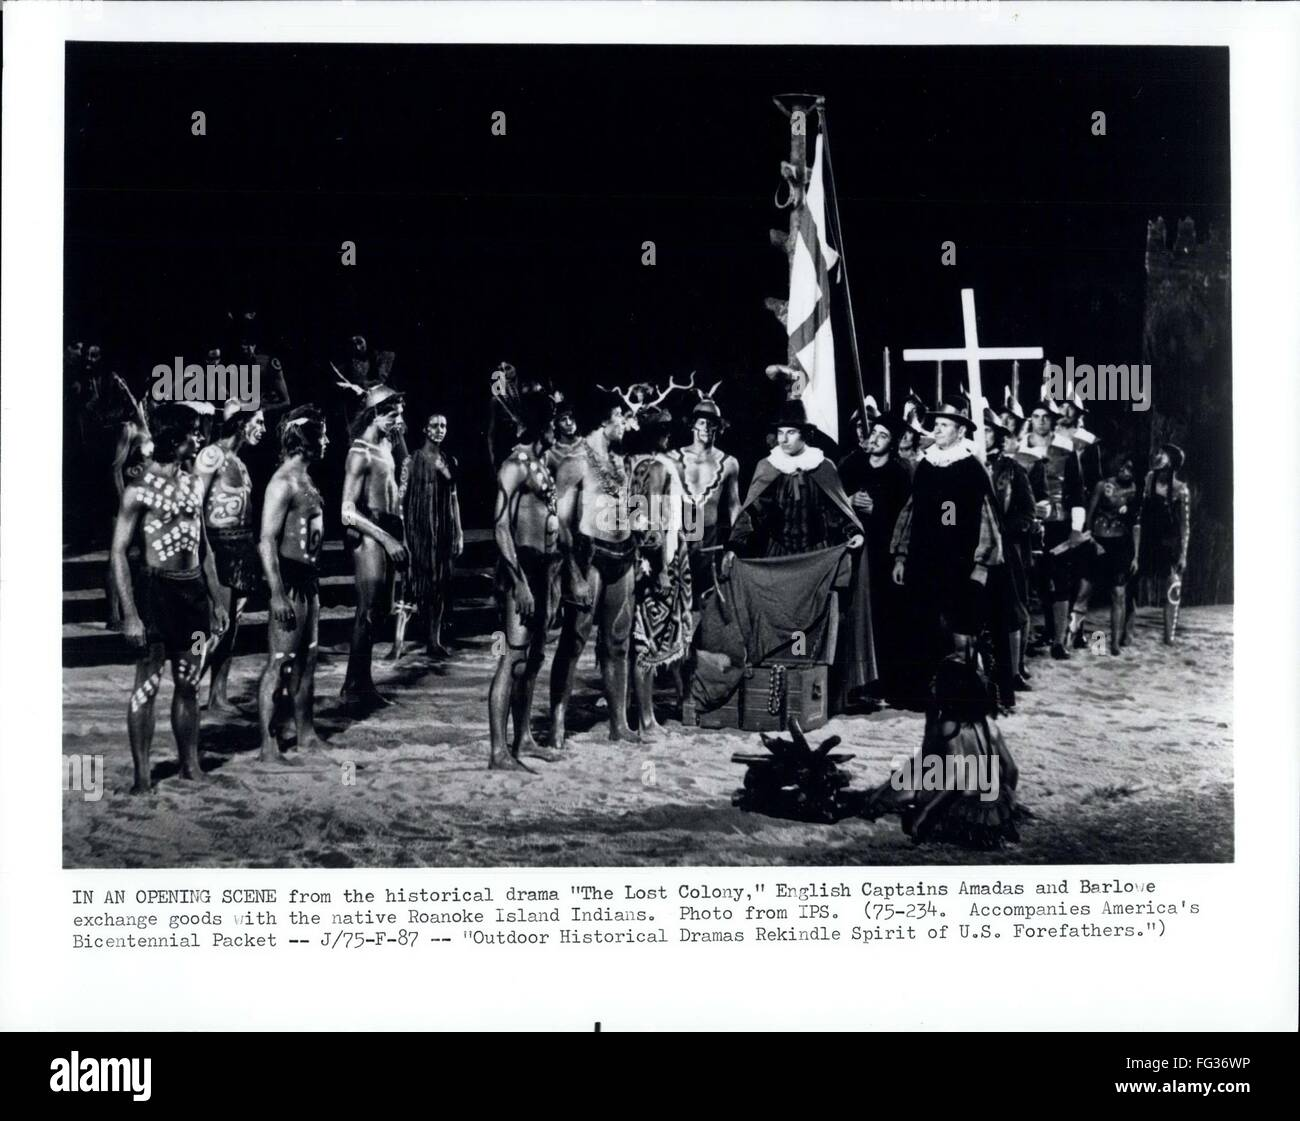 1987 - In An Opening Scene from the historical drama '' The Lost Colony, '' English Captains Amadas and Barlo~e Stock Photo